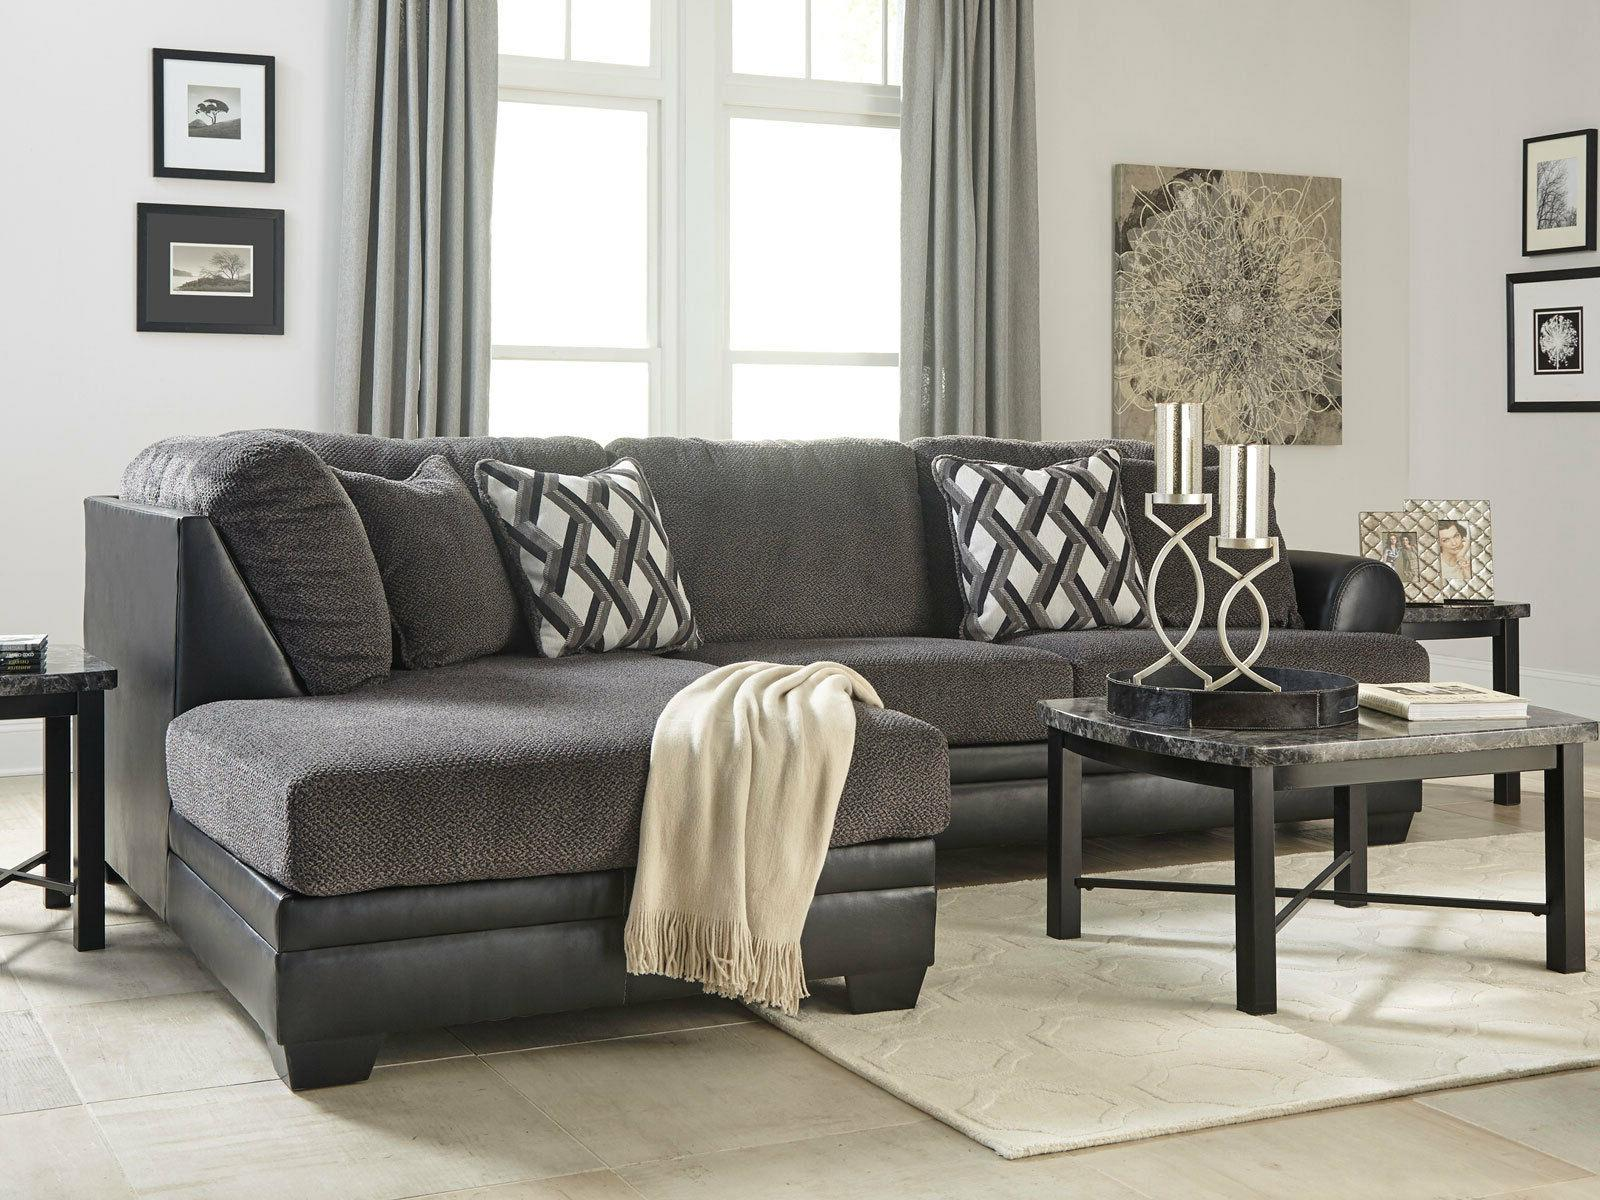 jasper modern sectional couch living room furniture